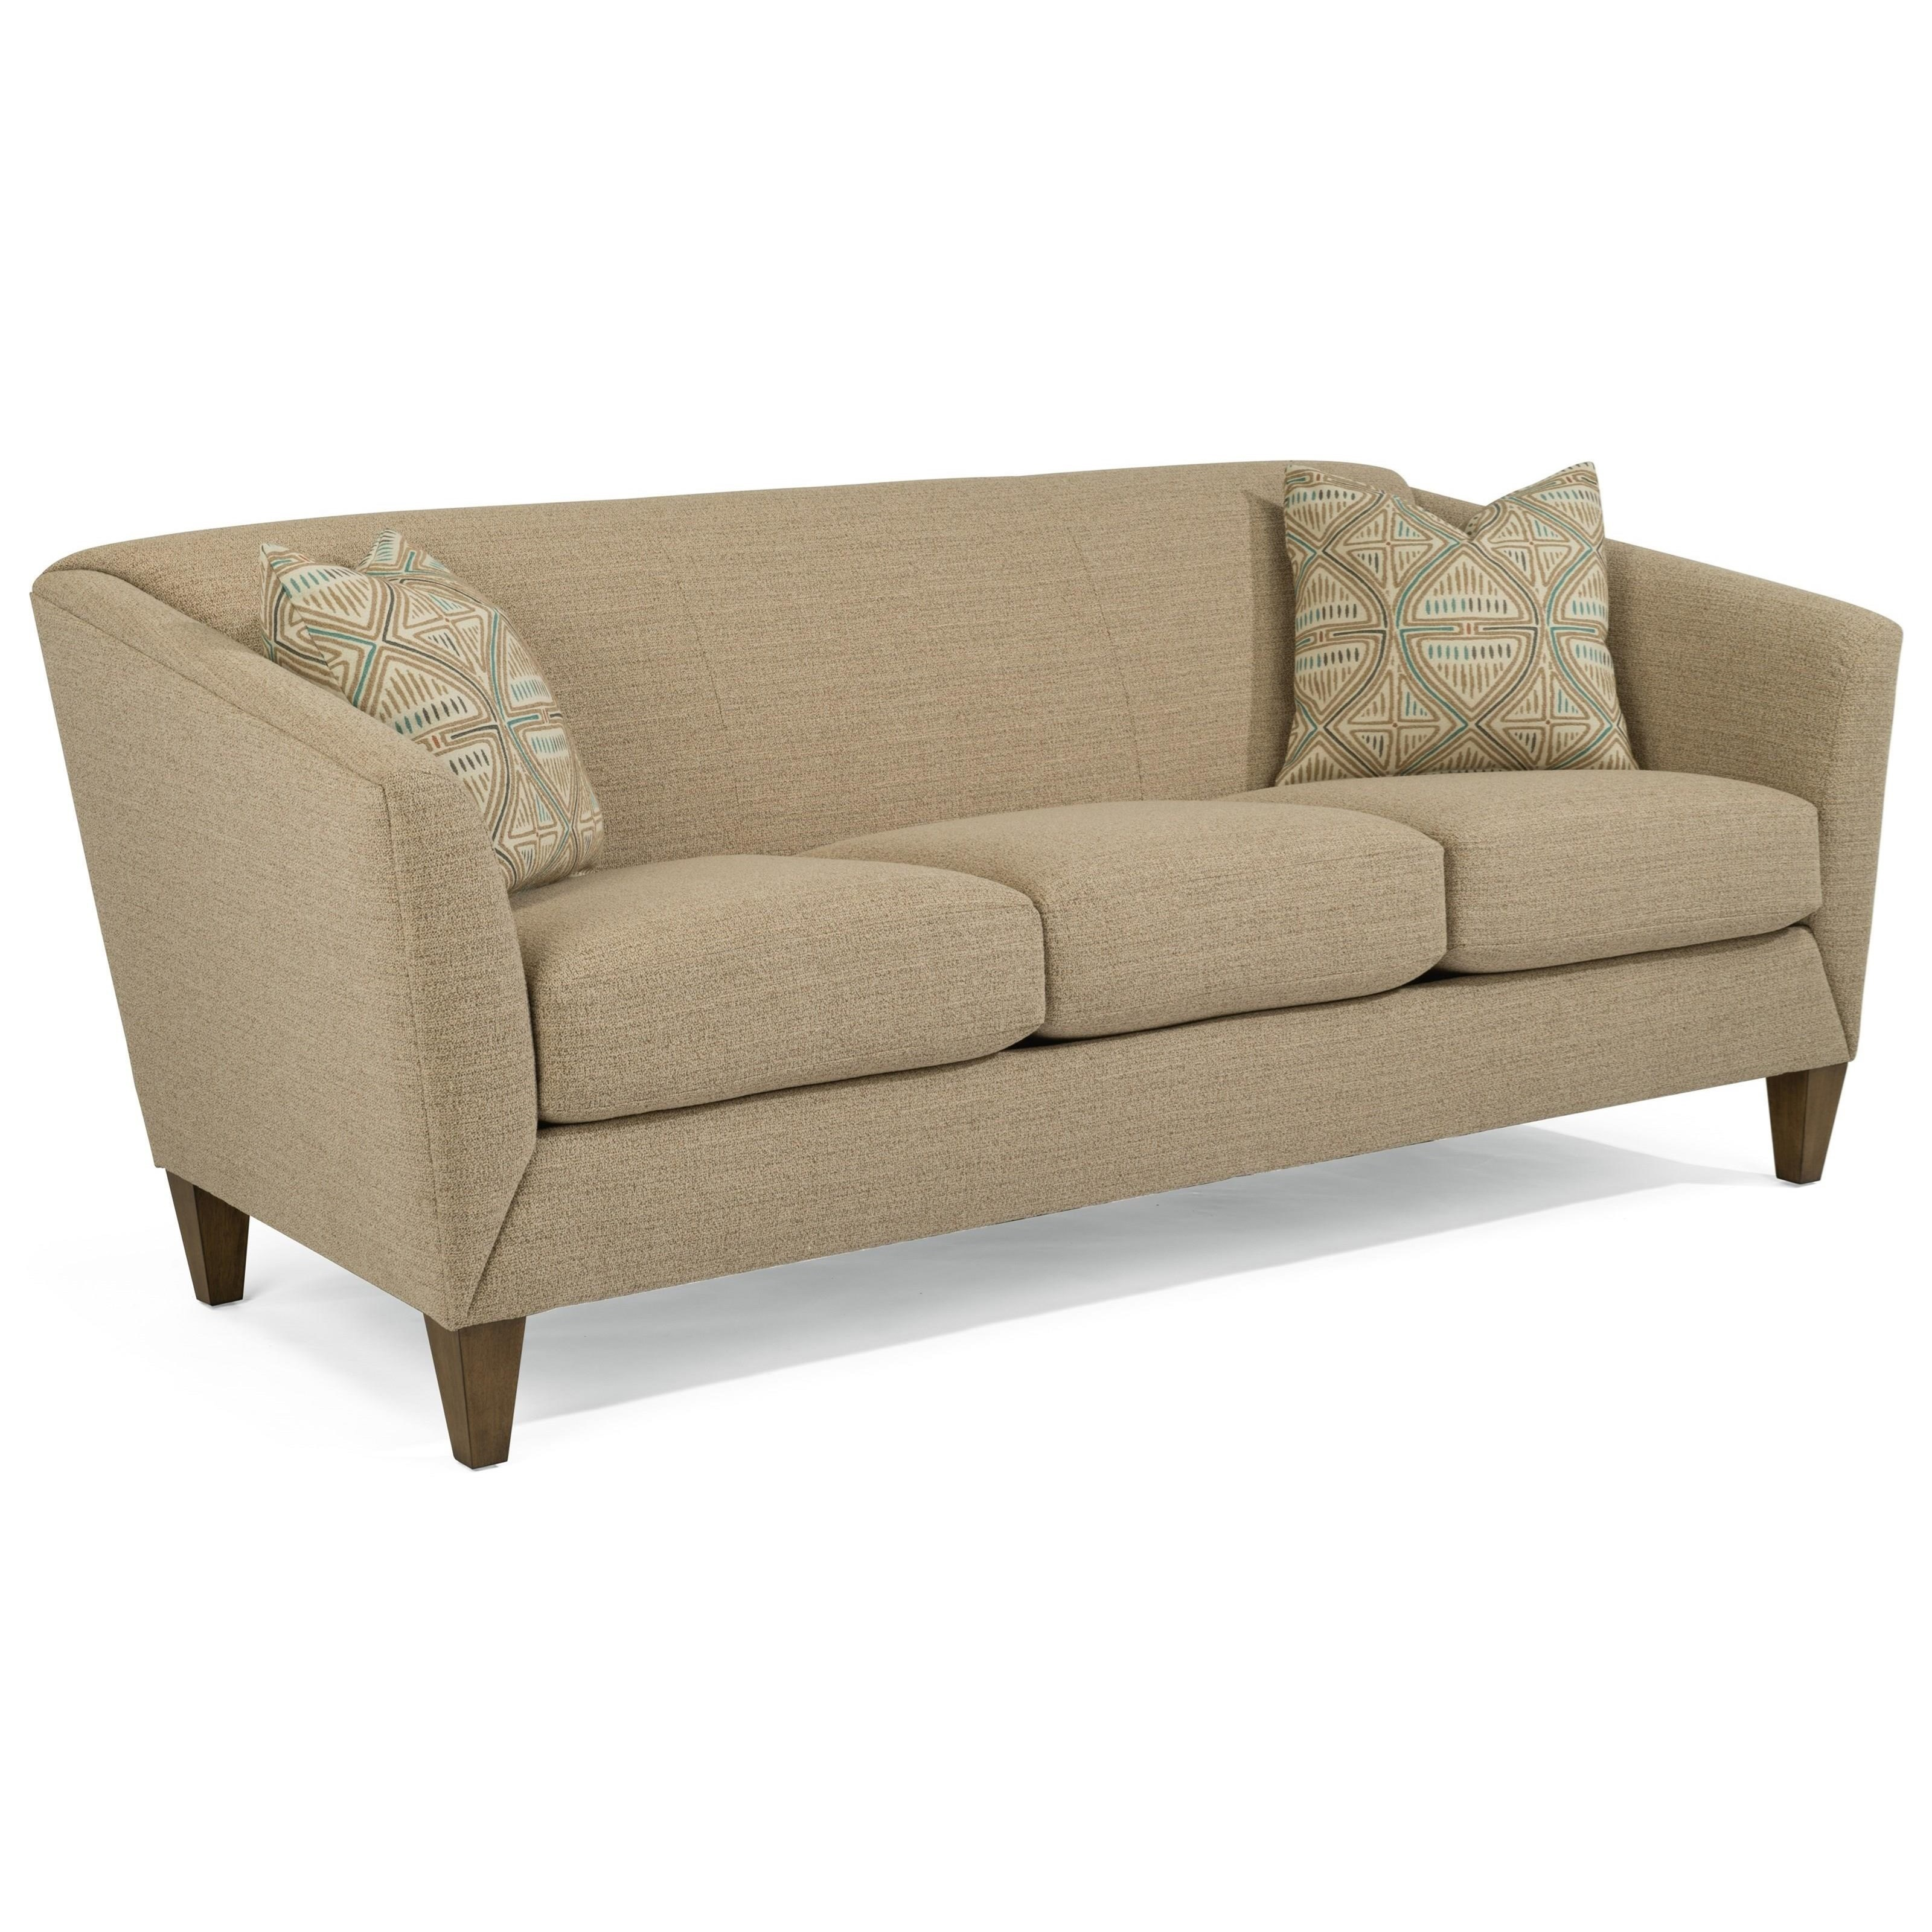 Flexsteel Sofa Bed Mattress: Flexsteel Emery Transitional Sofa With Flare Tapered Arms